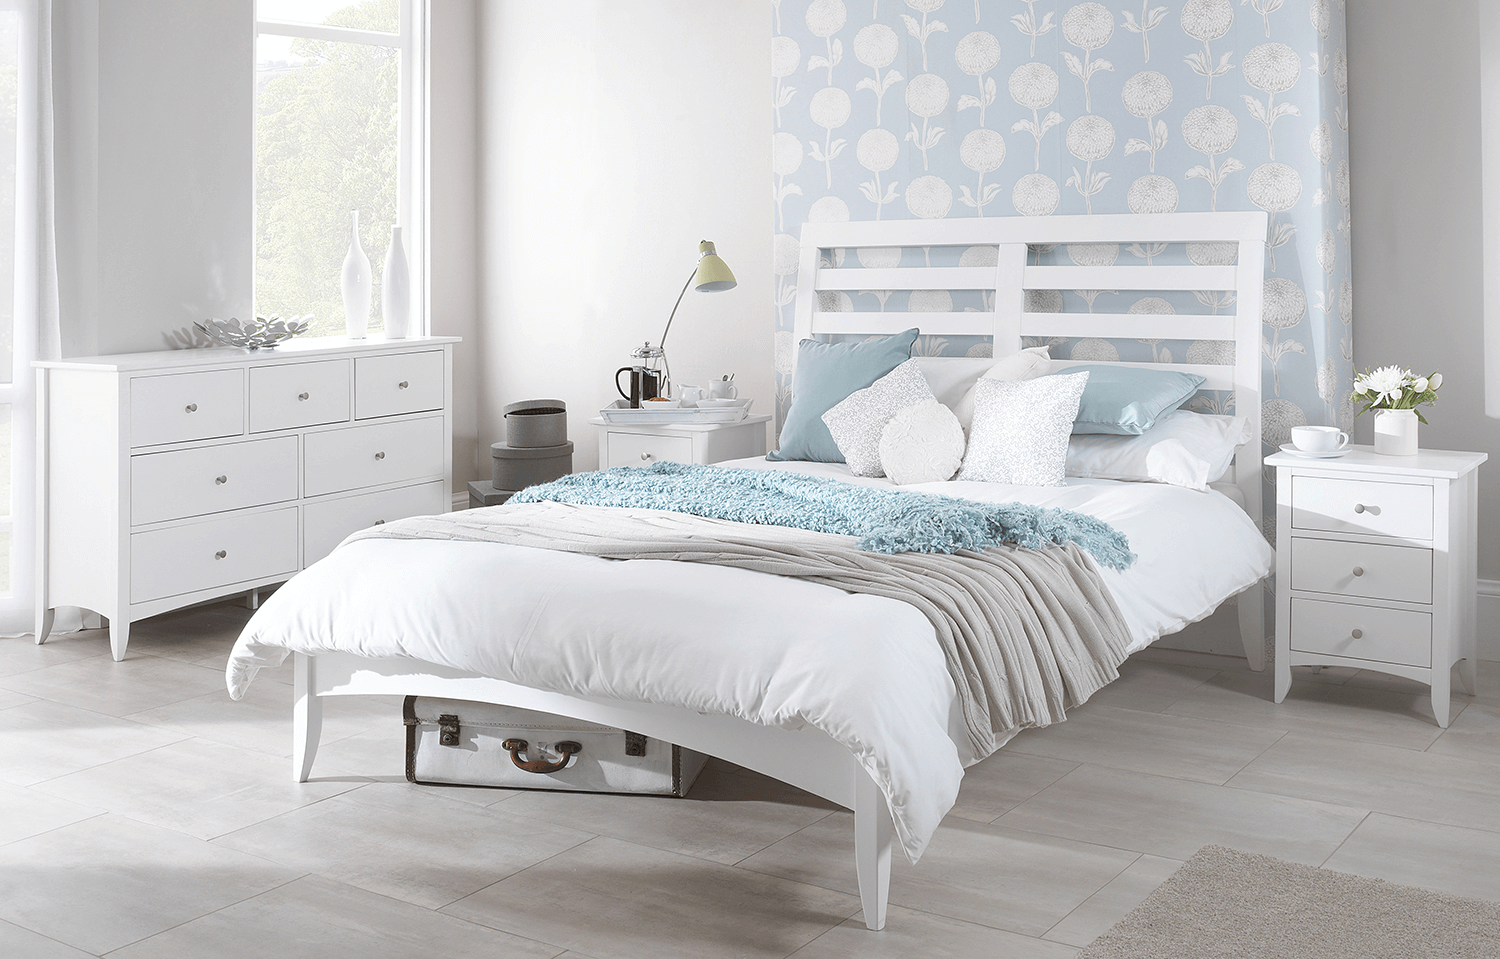 White Bedside Drawers Bedroom Furniture sets